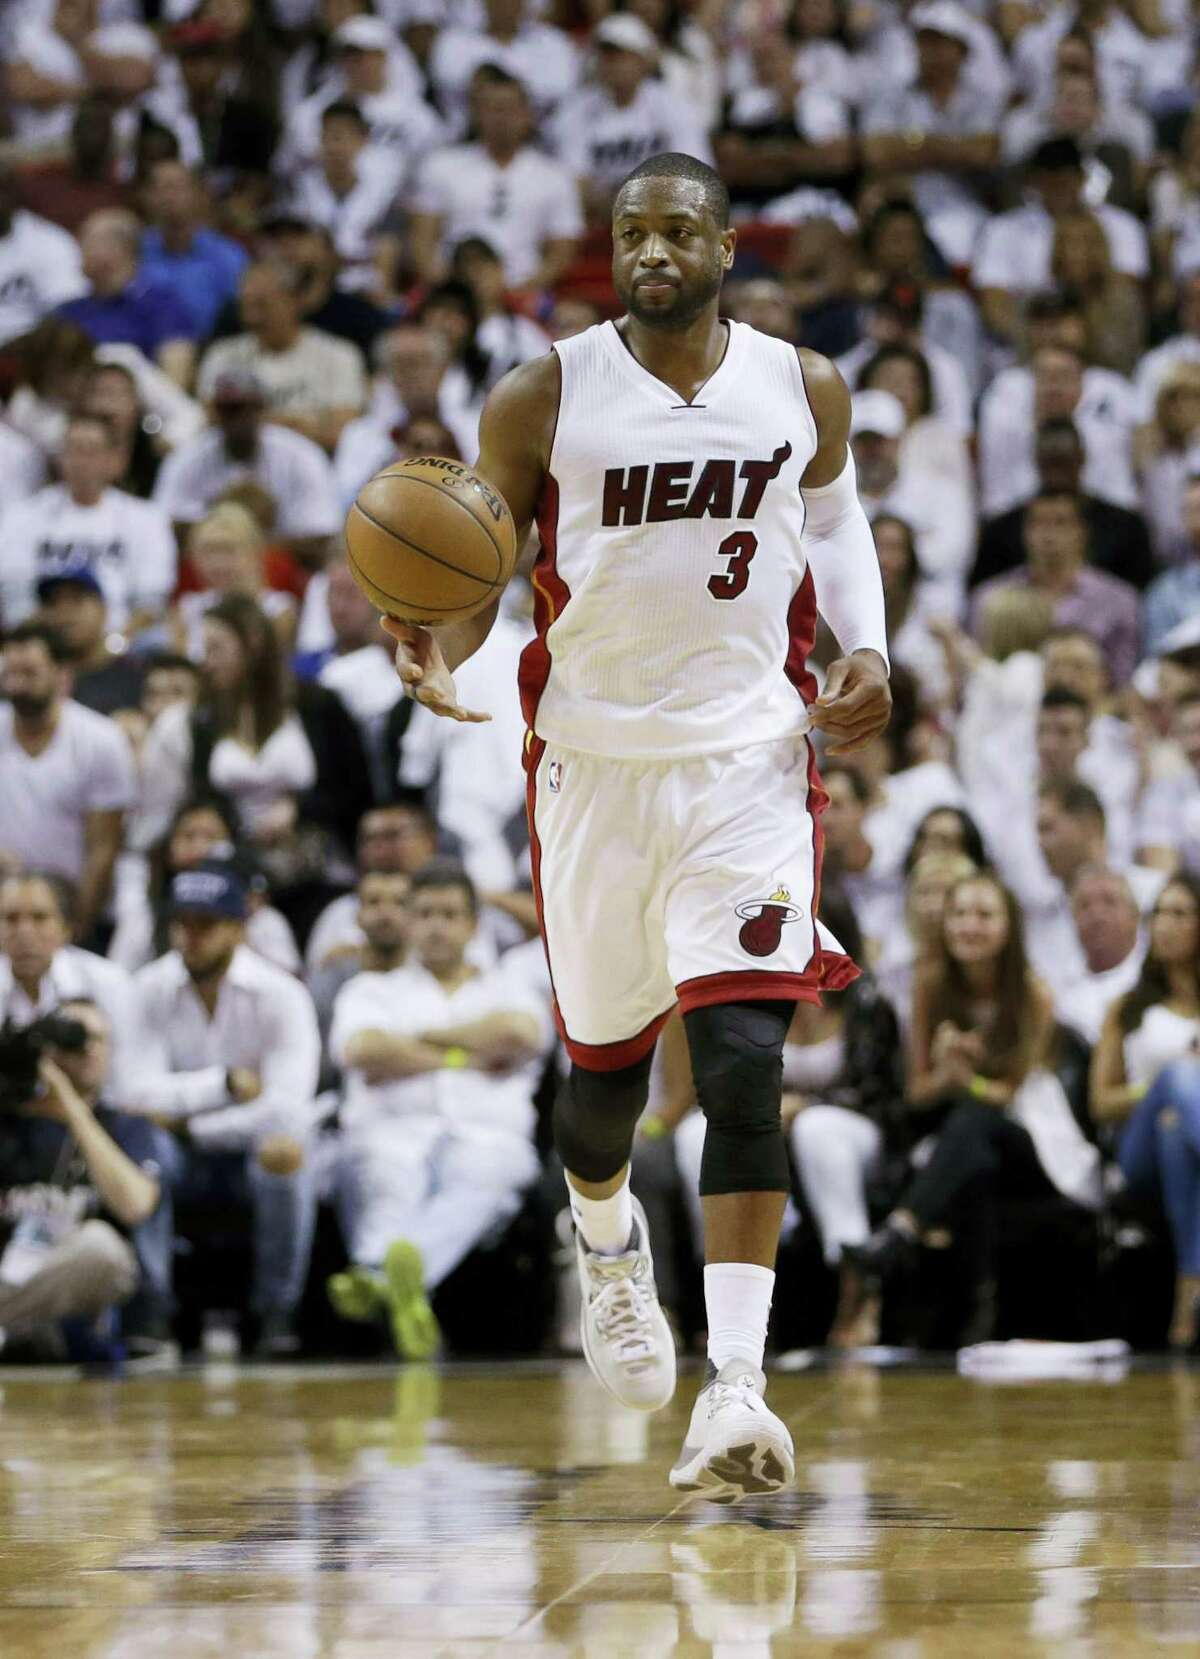 Miami Heat guard Dwyane Wade dribbles up the court during Game 3 against the Raptors on Saturday.